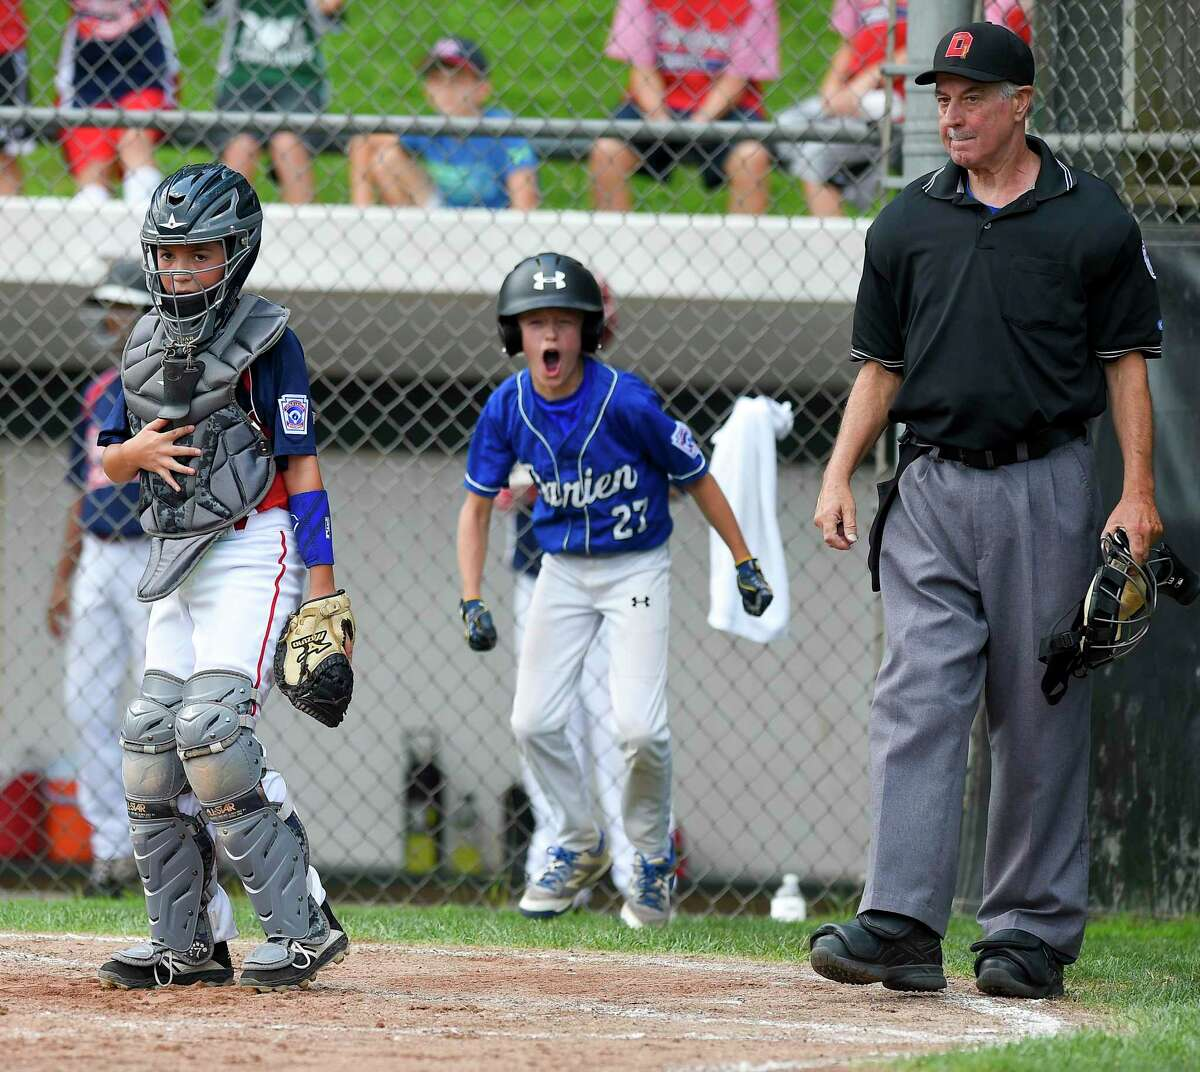 Darien defeated Stamford North 12-2 (5 innings) in the District 1 Little League championship game at Drotar Park in Stamford, Conn. on July 13, 2019.